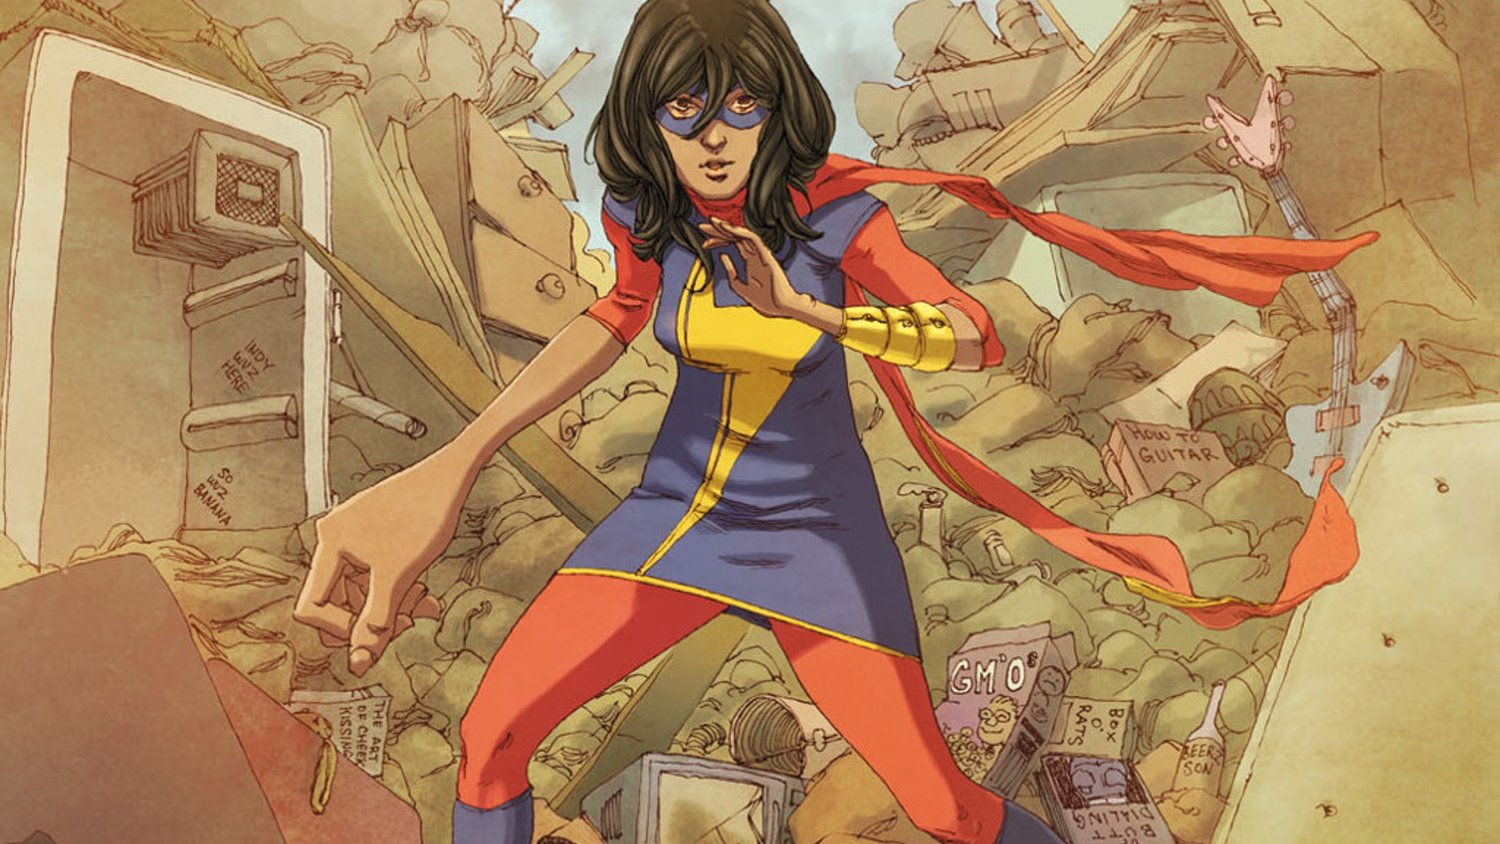 Director Lexi Alexander Says Marvel Should Develop a MS. MARVEL Series Because She's Muslim-American